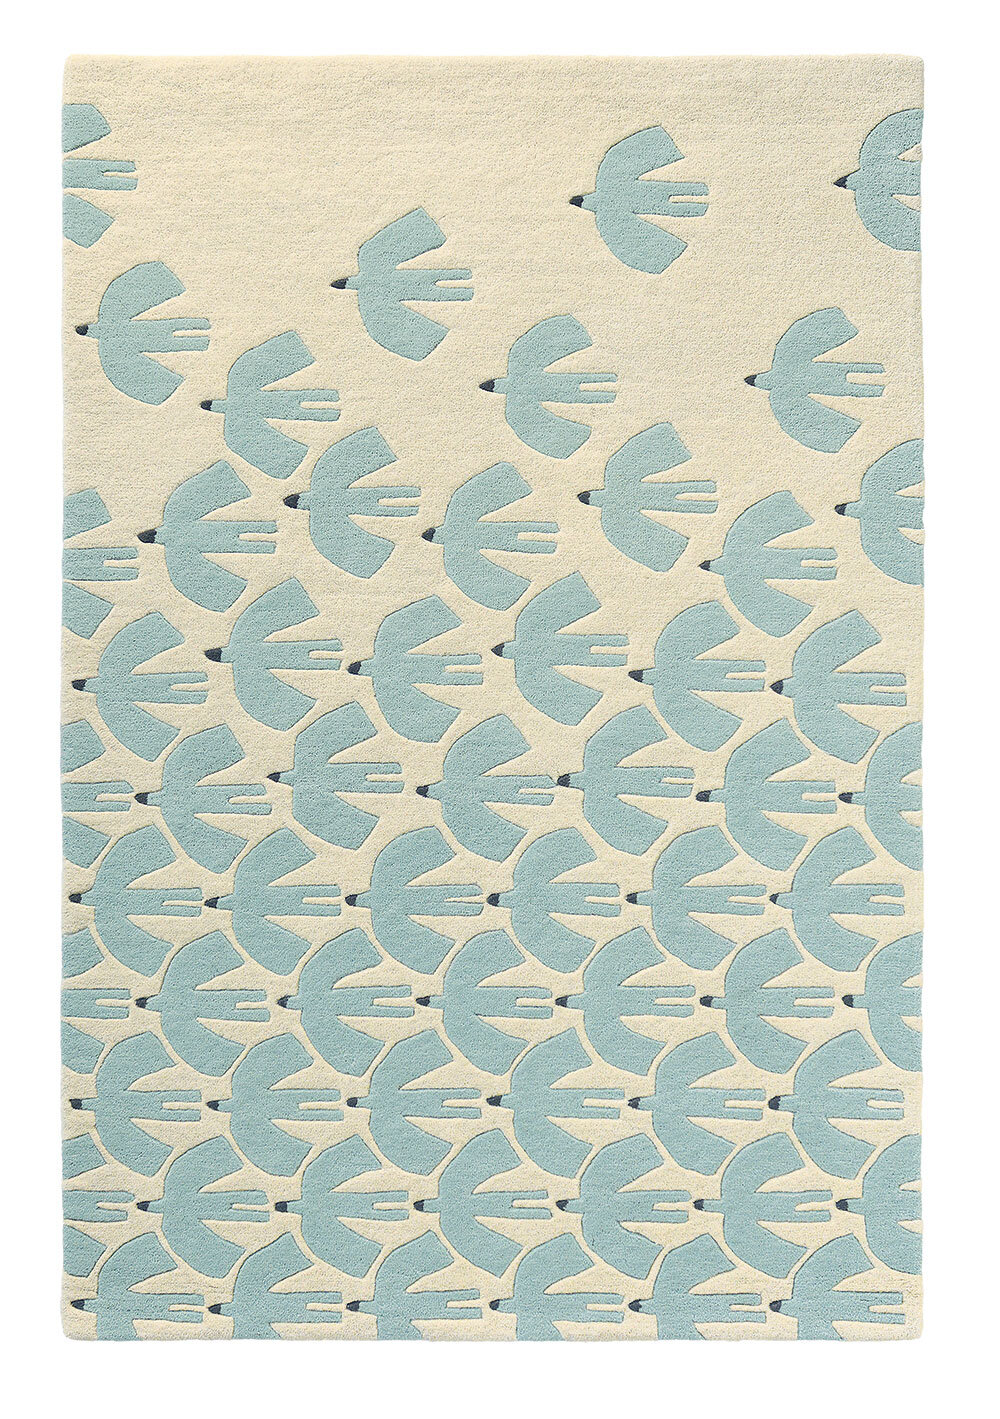 Scion Pajaro Rug Mint - Product code: 152019